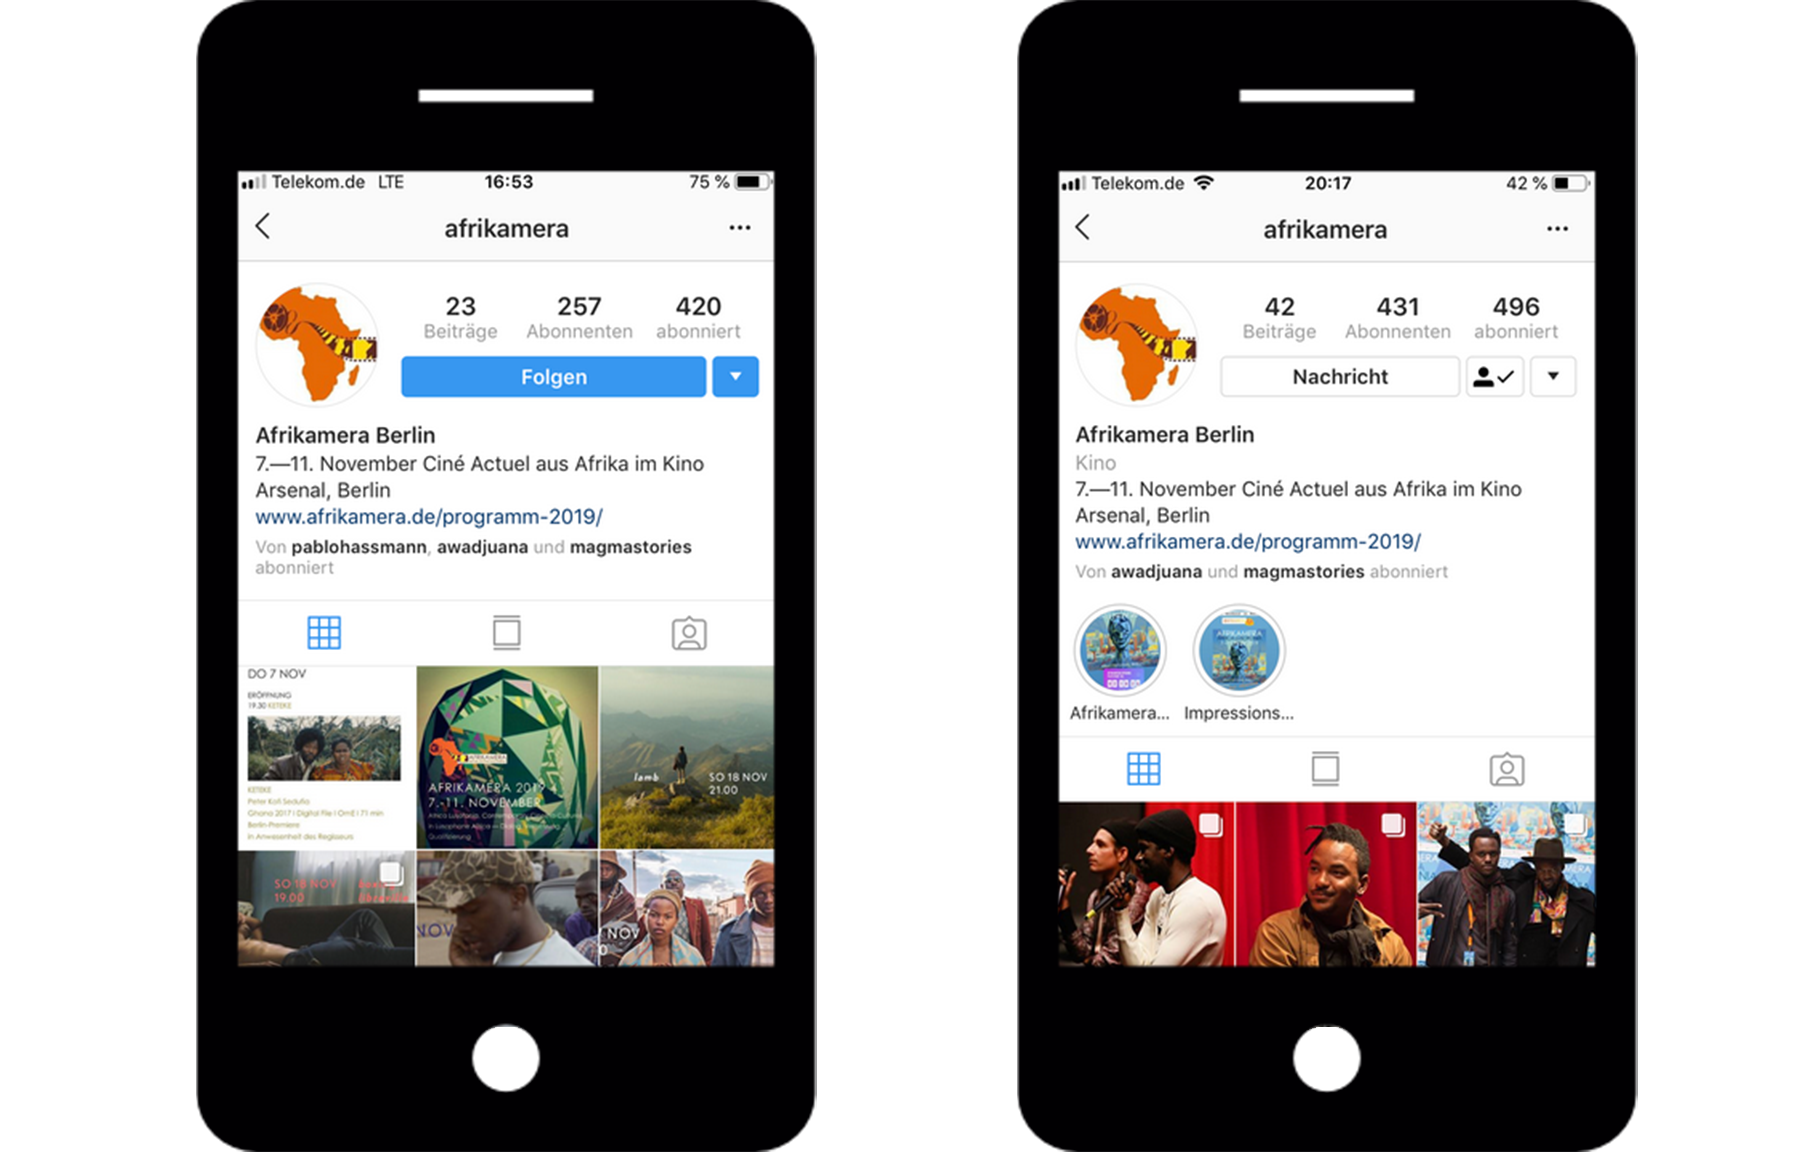 Social Media impact on Instagram (before and after the event).